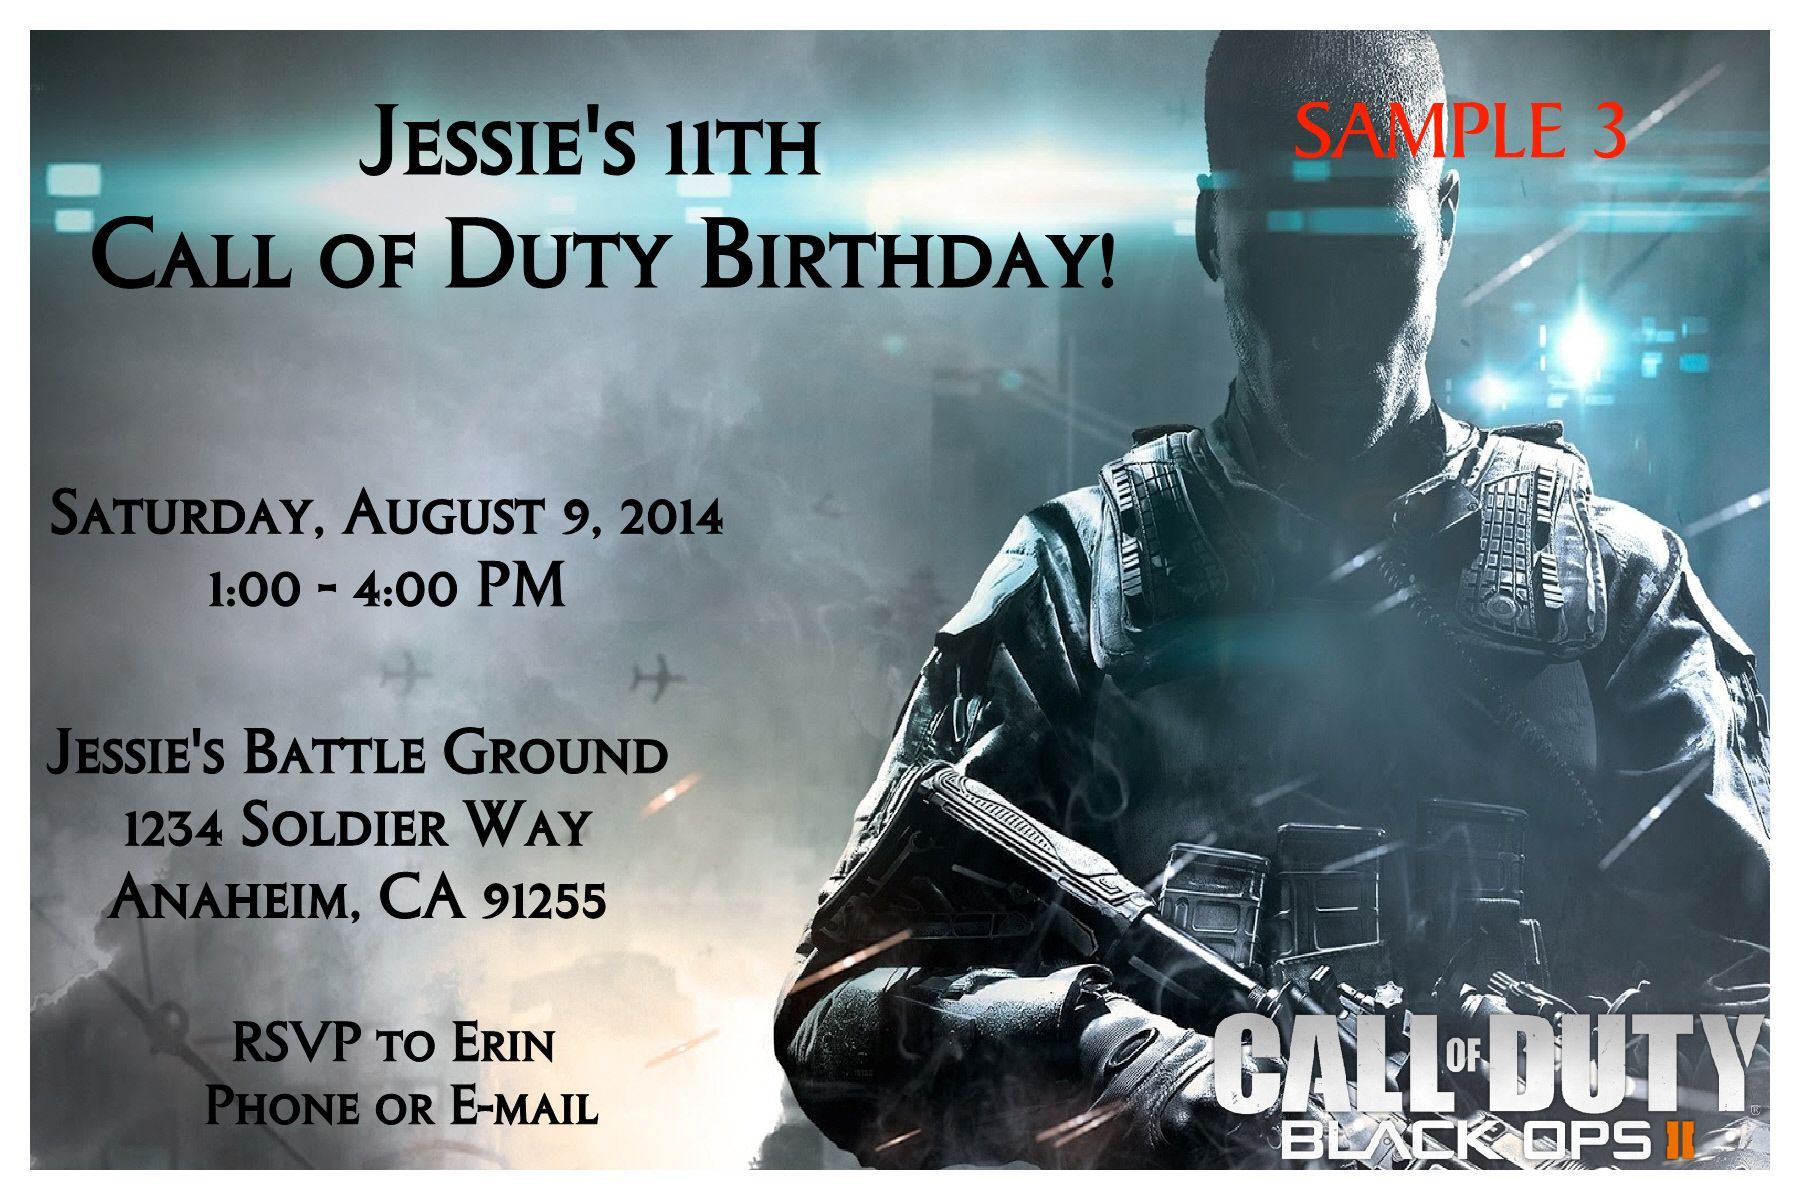 Enchanting Call Of Duty Birthday Invitations Illustration